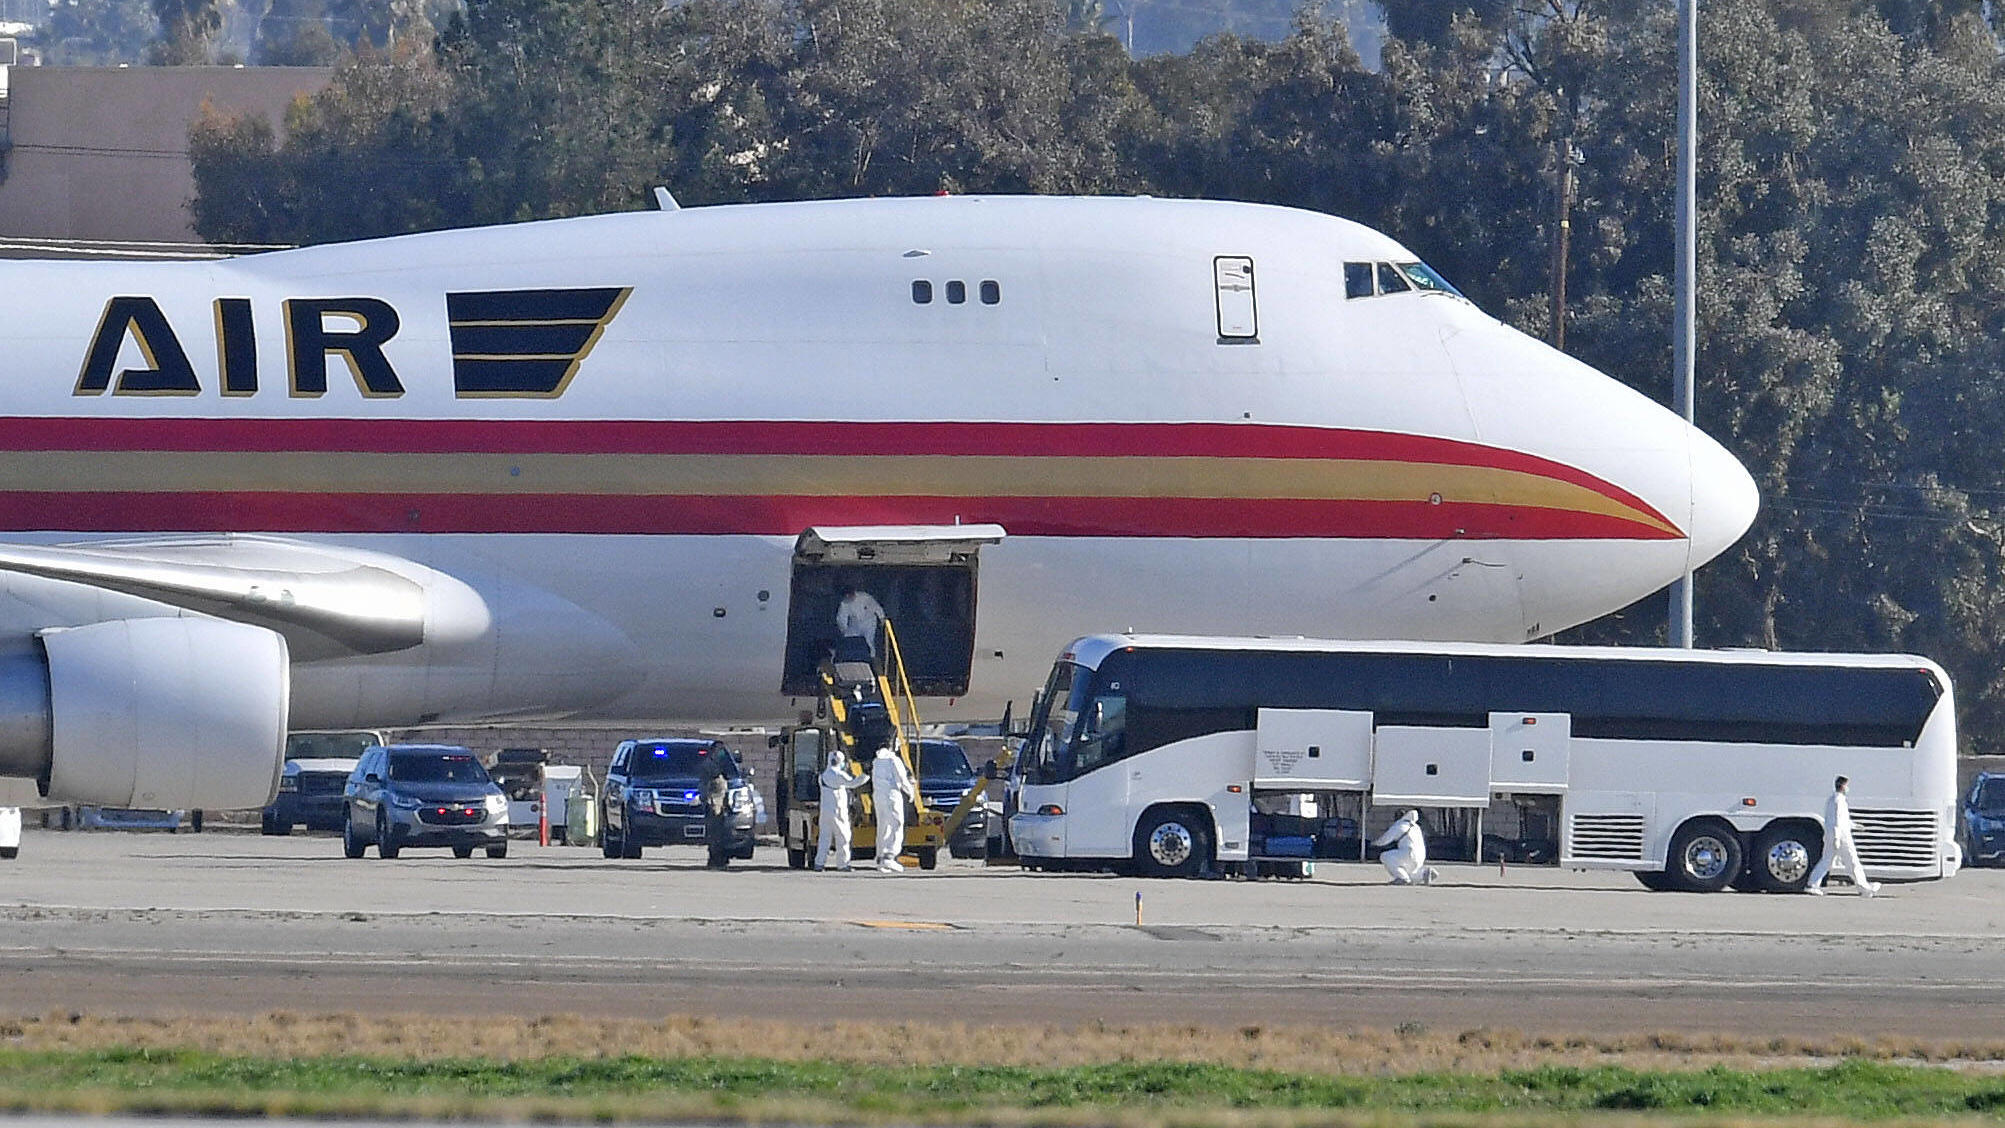 January 29, 2020, Riverside, California, USA: A team in white biohazard suits unload luggage off a charter flight from Wuhan, China, carrying approximately 200 U.S. citizens, after landing at March Air Reserve Base in Riverside, Calif. Wednesday morn